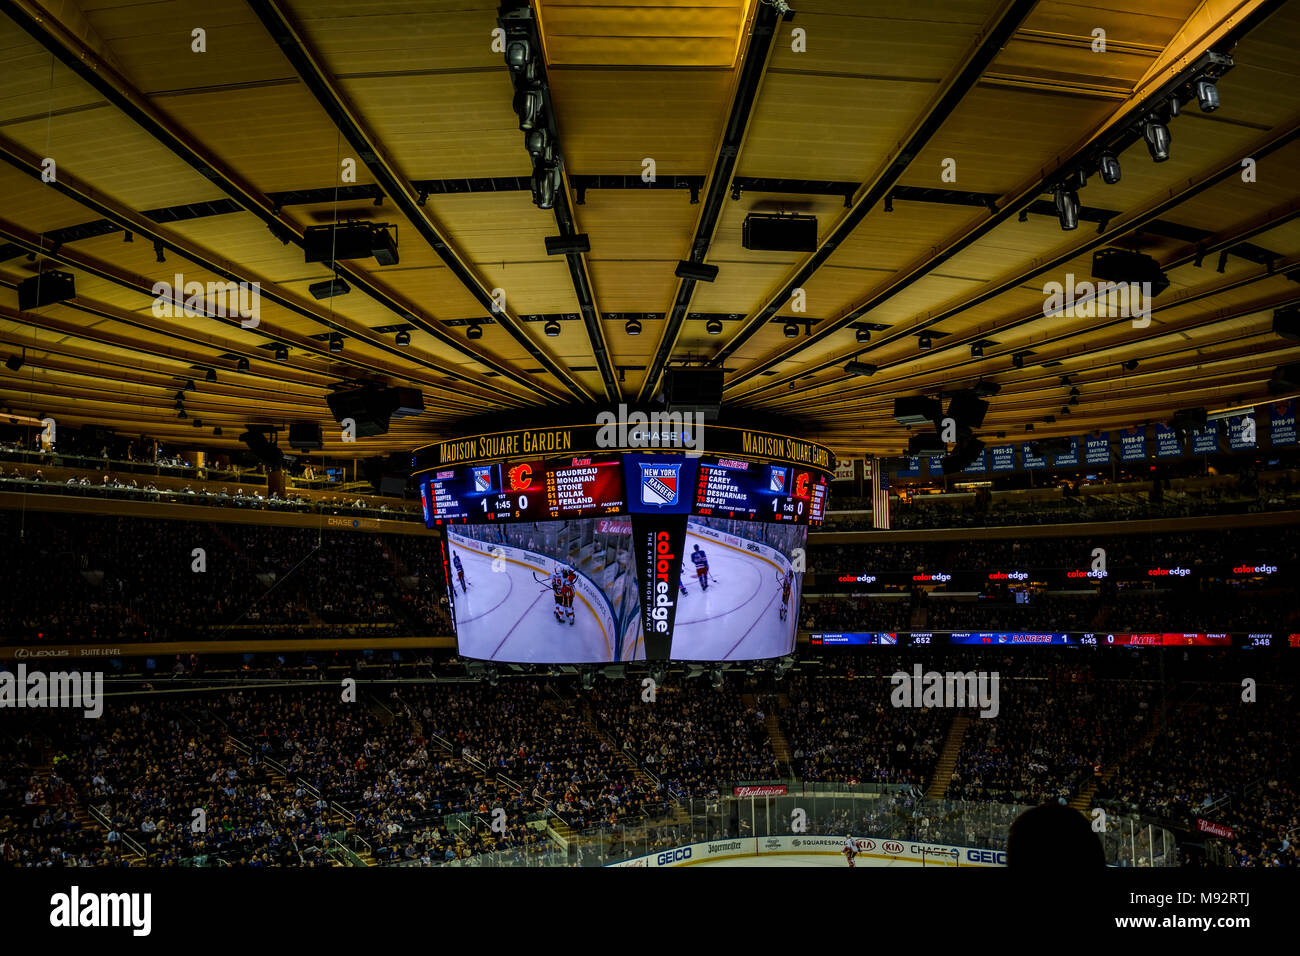 New York Rangers Hockey Team Stock Photos & New York Rangers Hockey ...